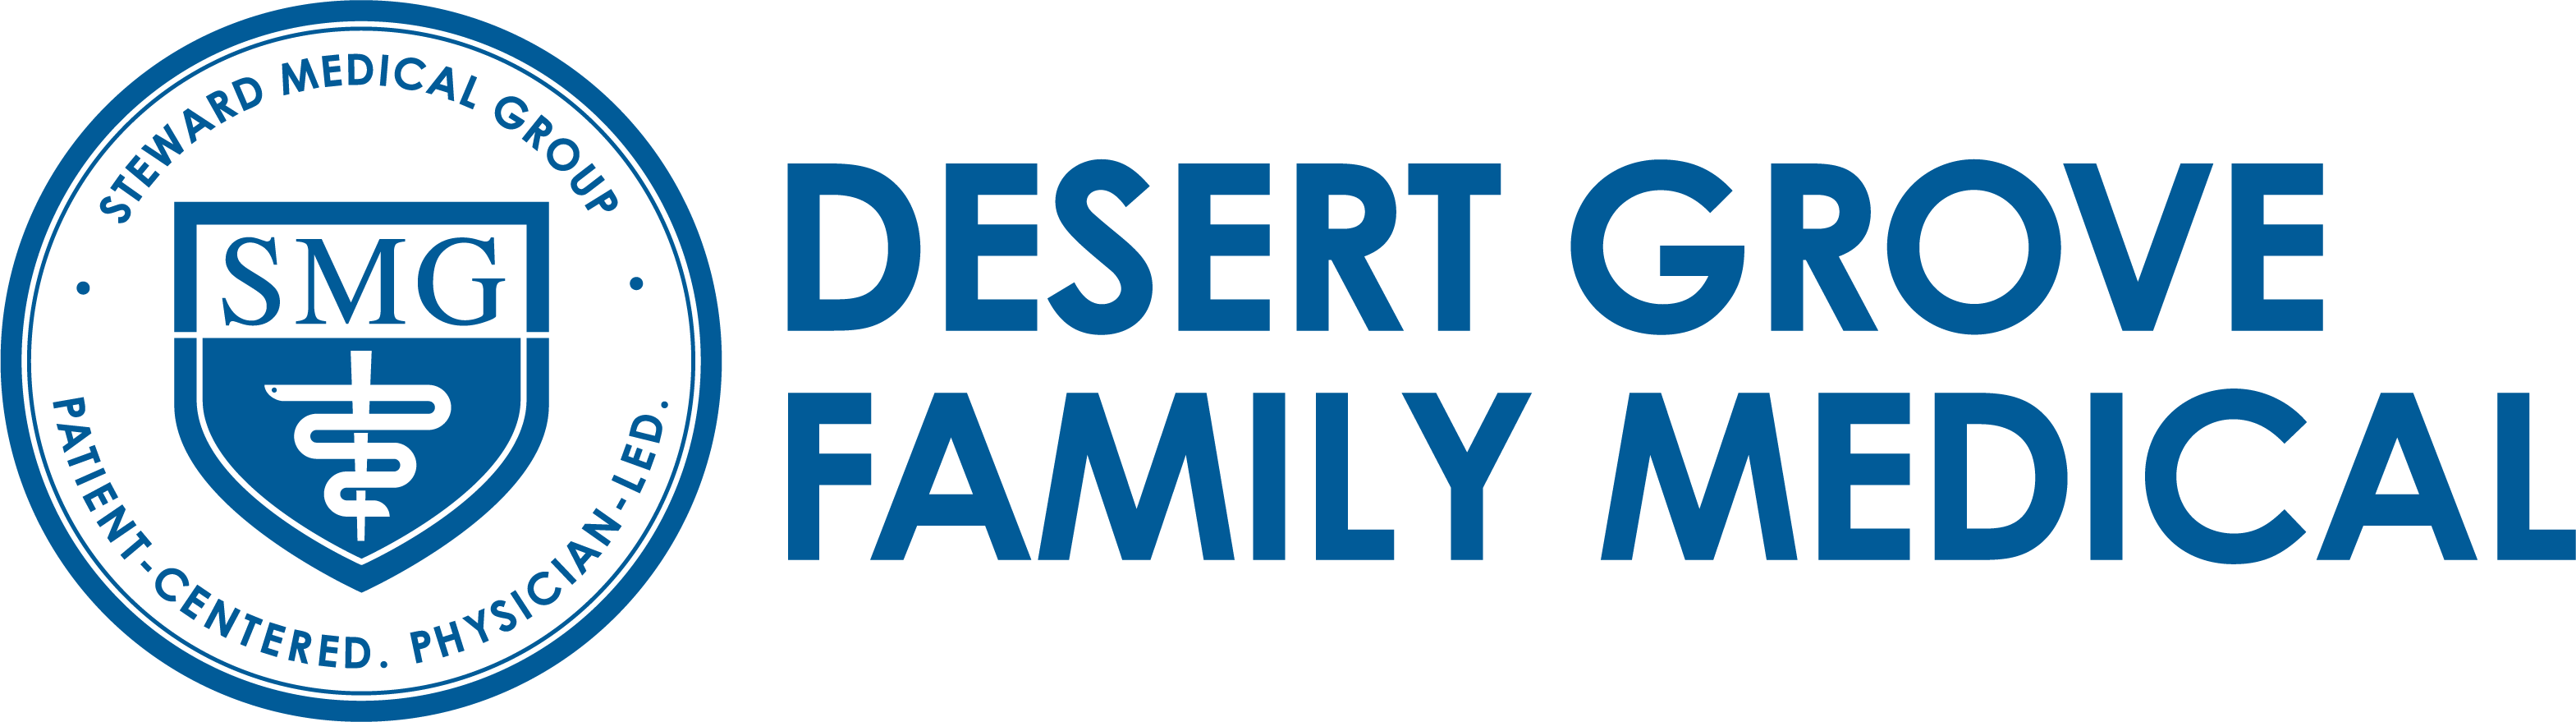 Locations Contact Desert Grove Family Medical